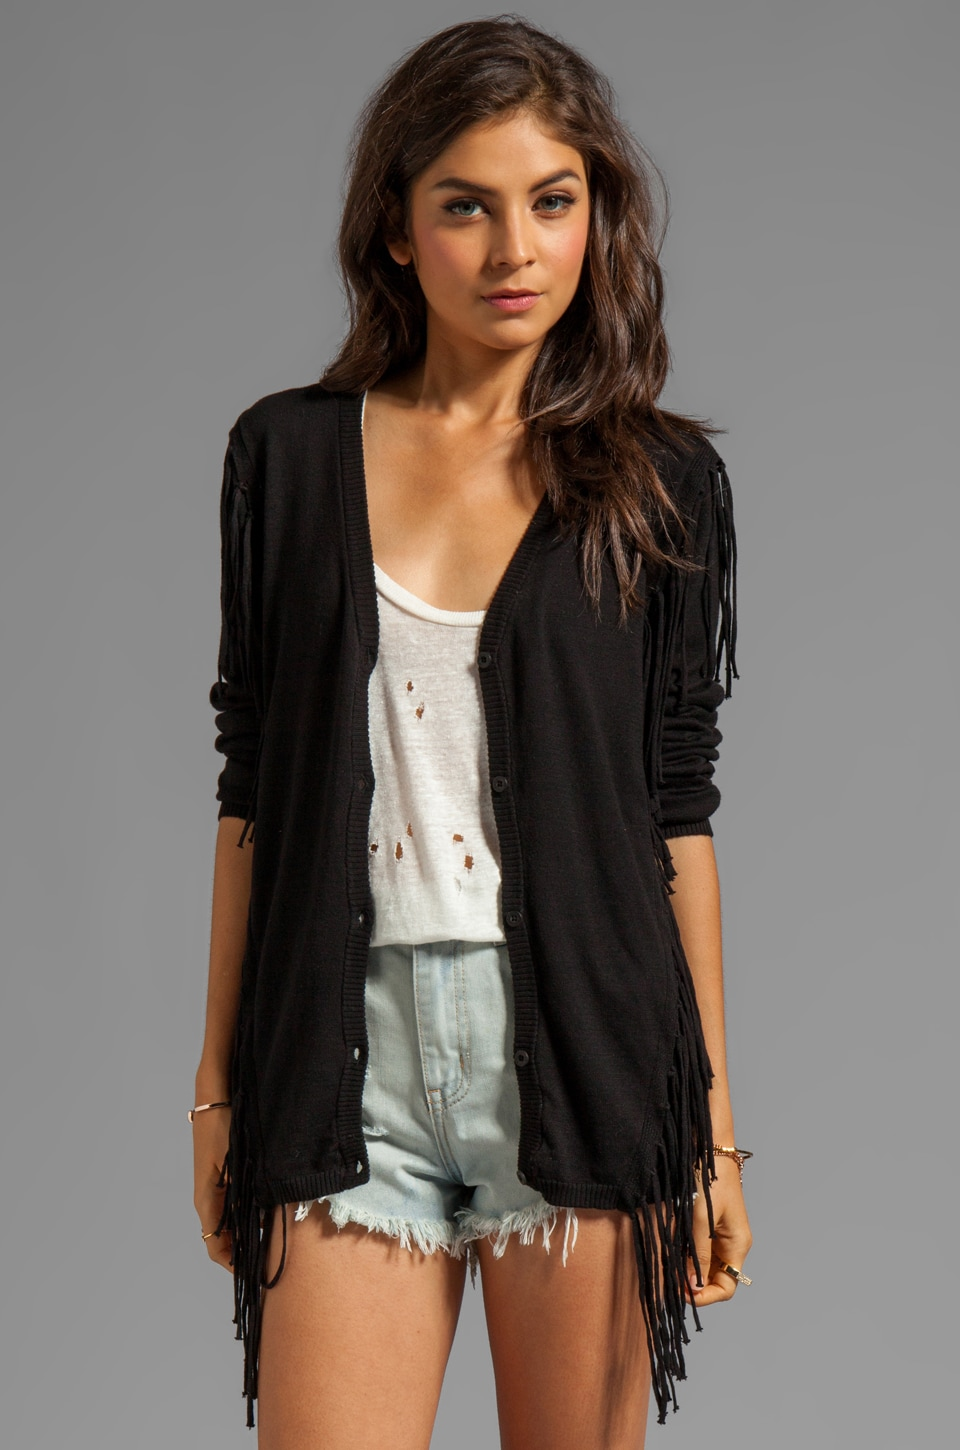 RVCA Whiskey V Neck Cardigan with Fringe in Black